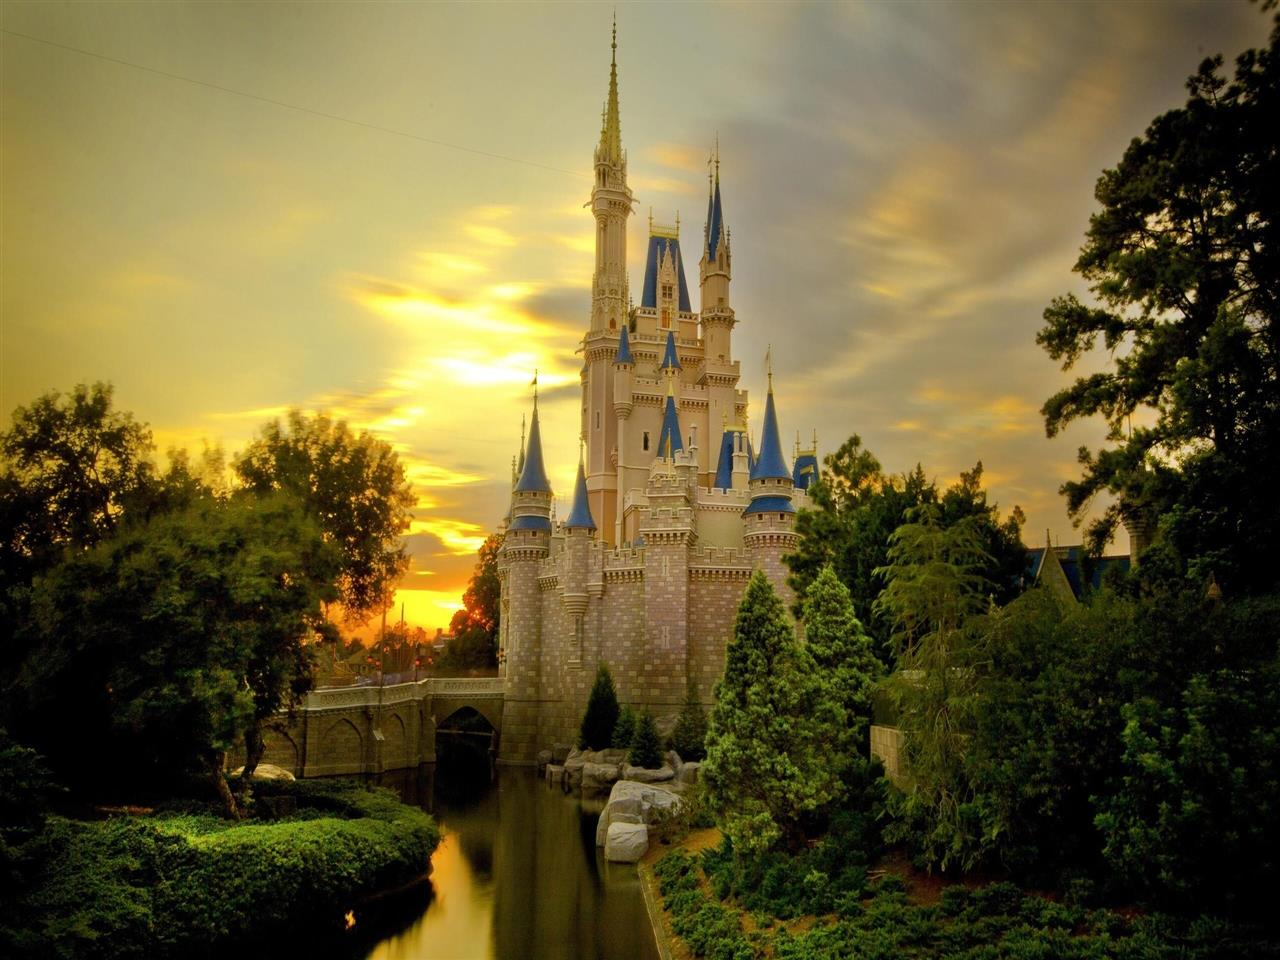 1280x960 Amazing Beautiful Cinderella Castle Image Free Download